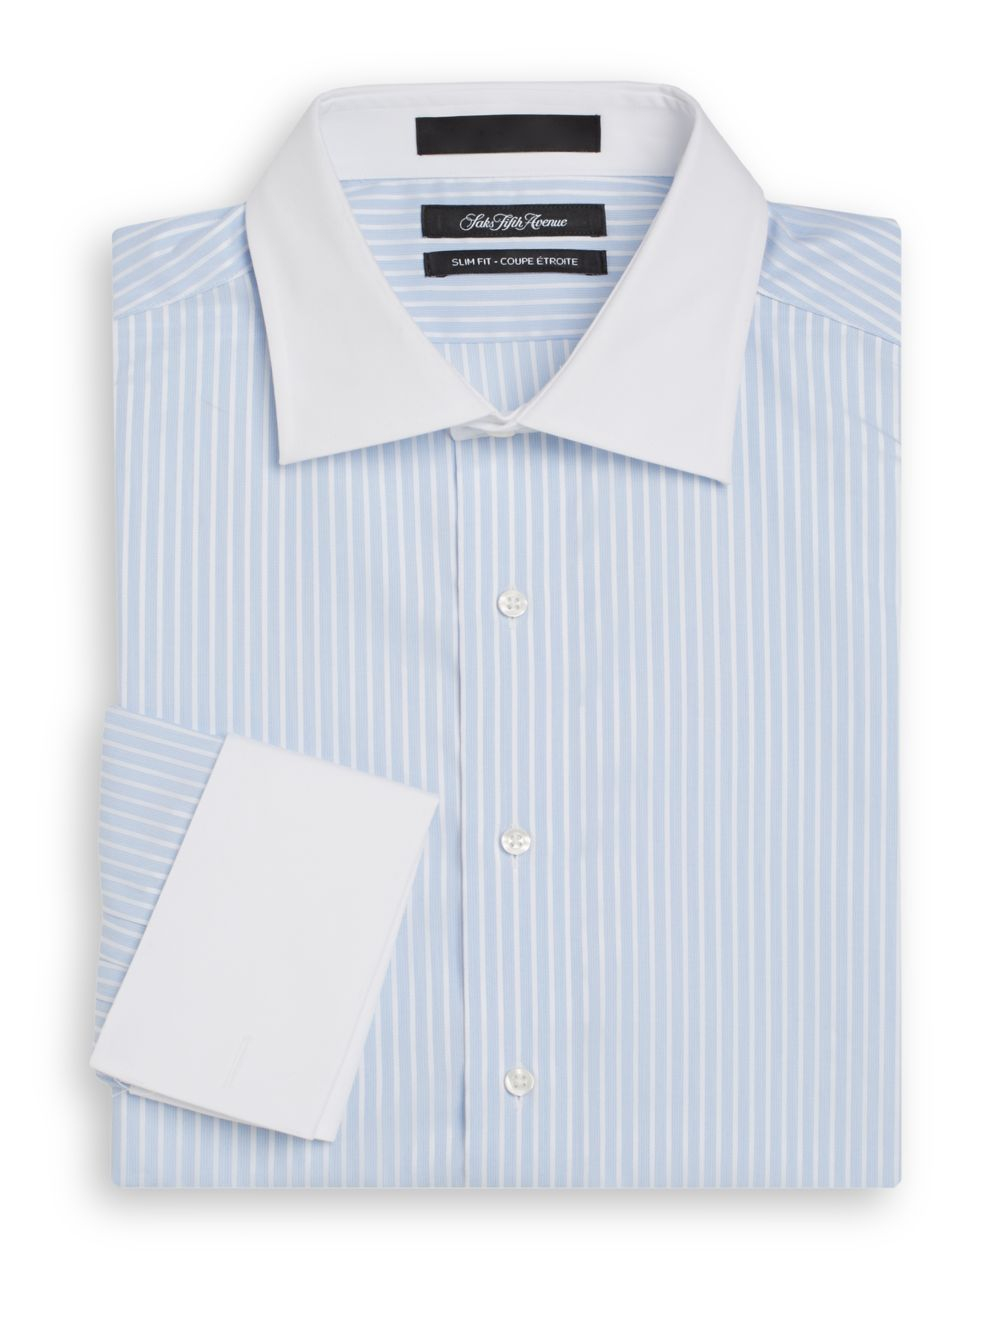 Saks fifth avenue slim fit striped french cuff dress shirt for French cuff slim fit dress shirt